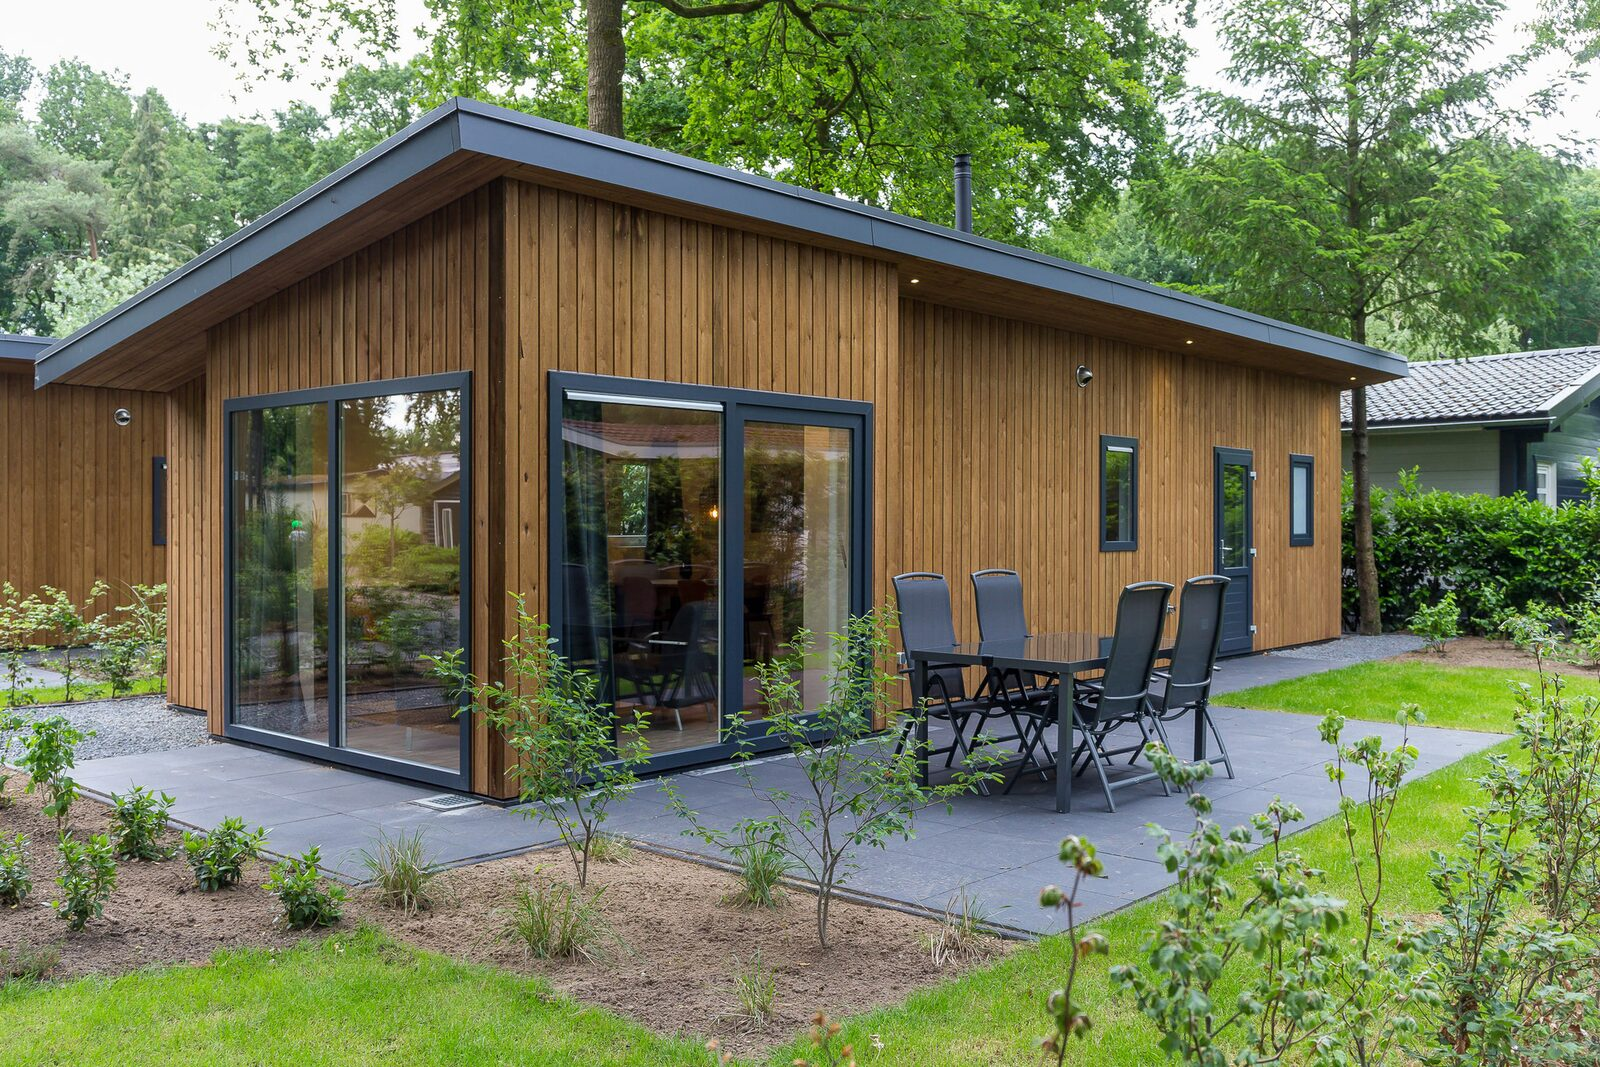 Wood Lodge Eco